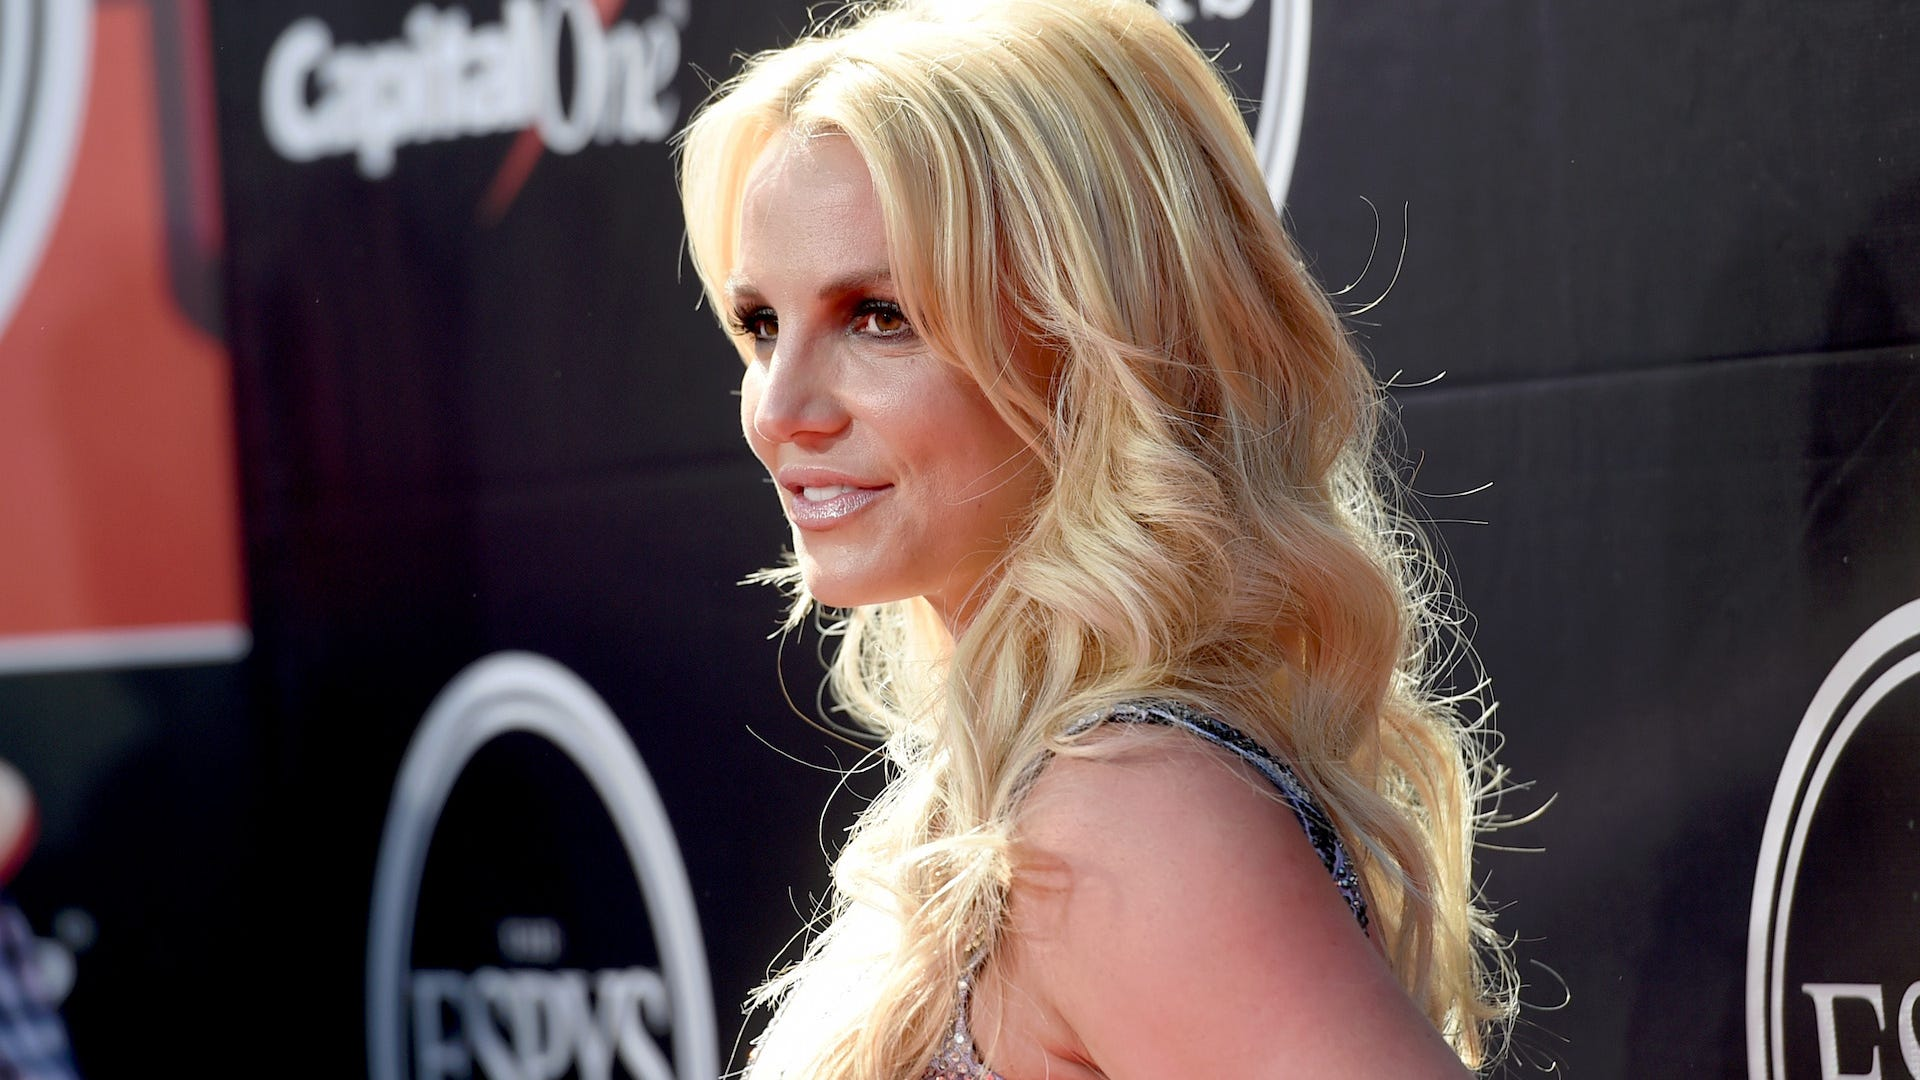 Britney Spears' lawyer claims Jamie Spears demanded $2 million to step down from conservatorship